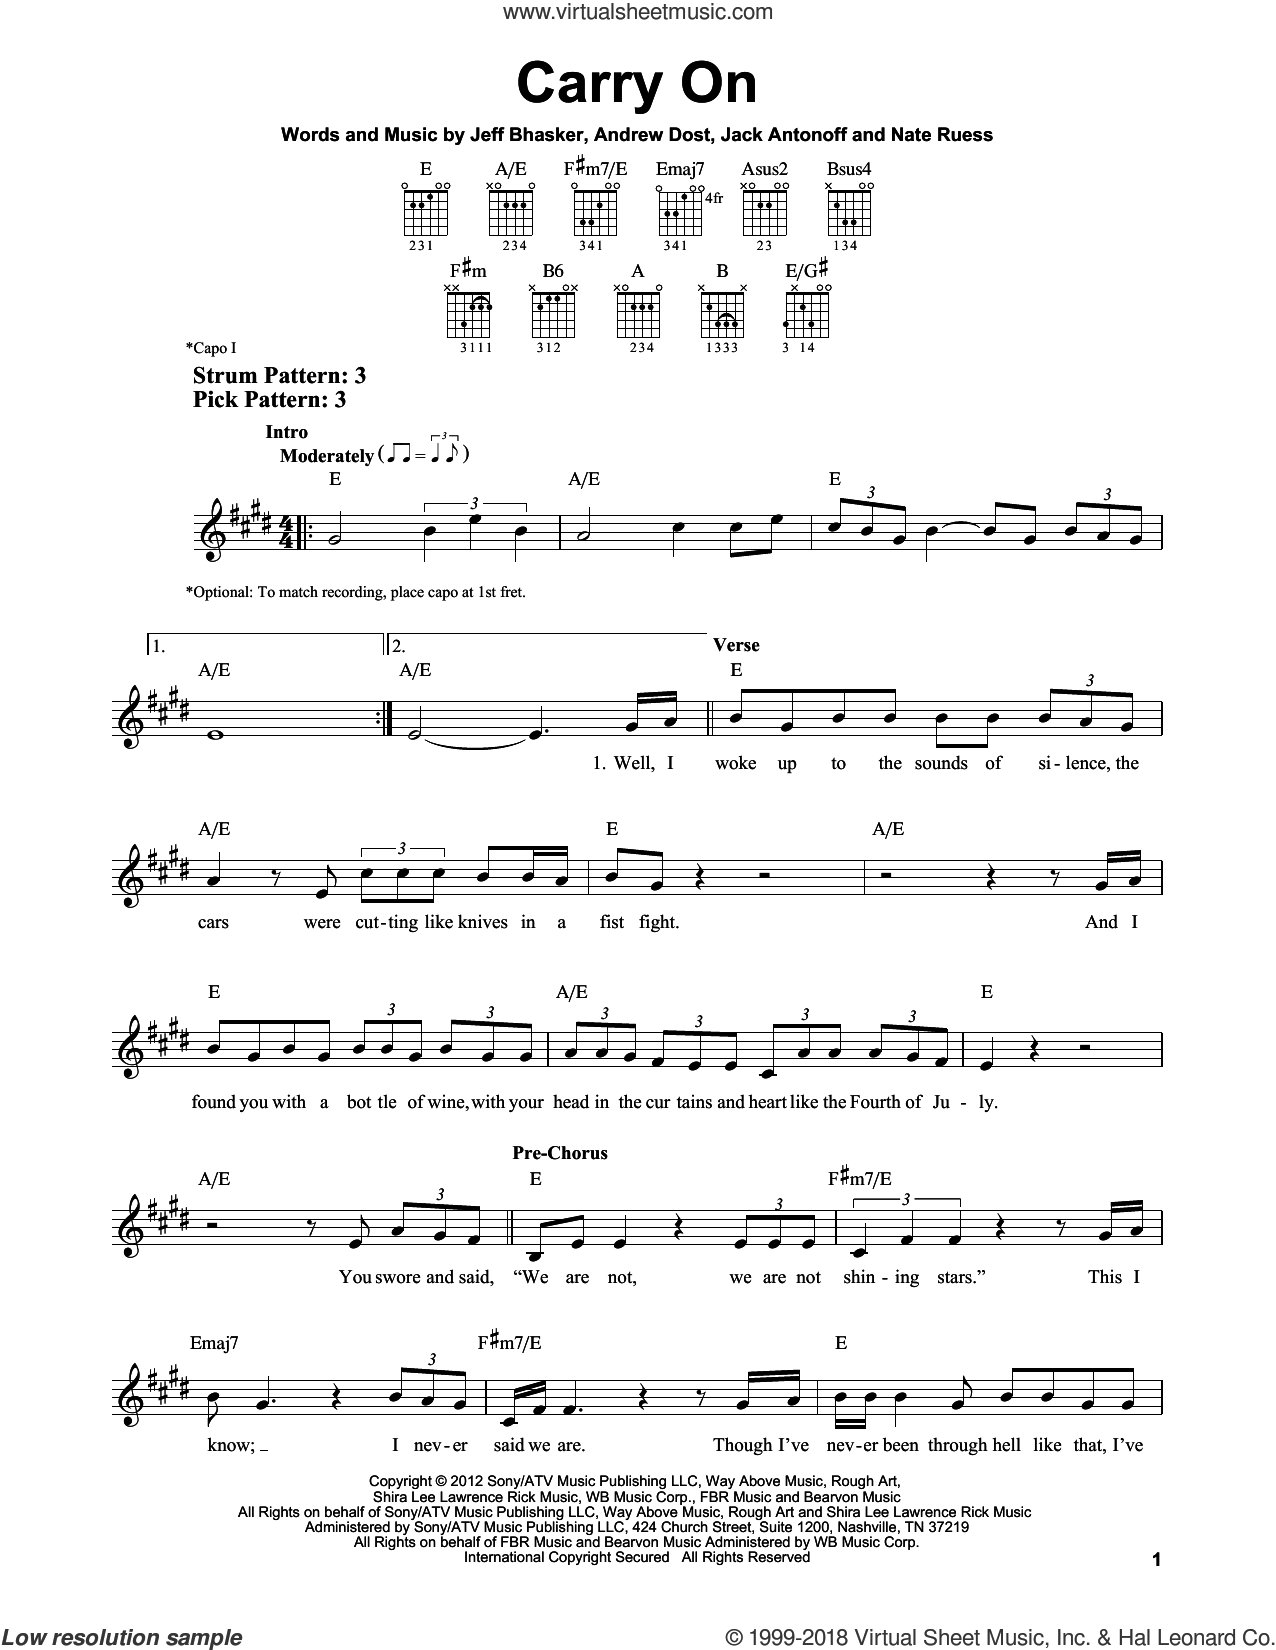 Carry On sheet music for guitar solo (chords) by Nate Ruess